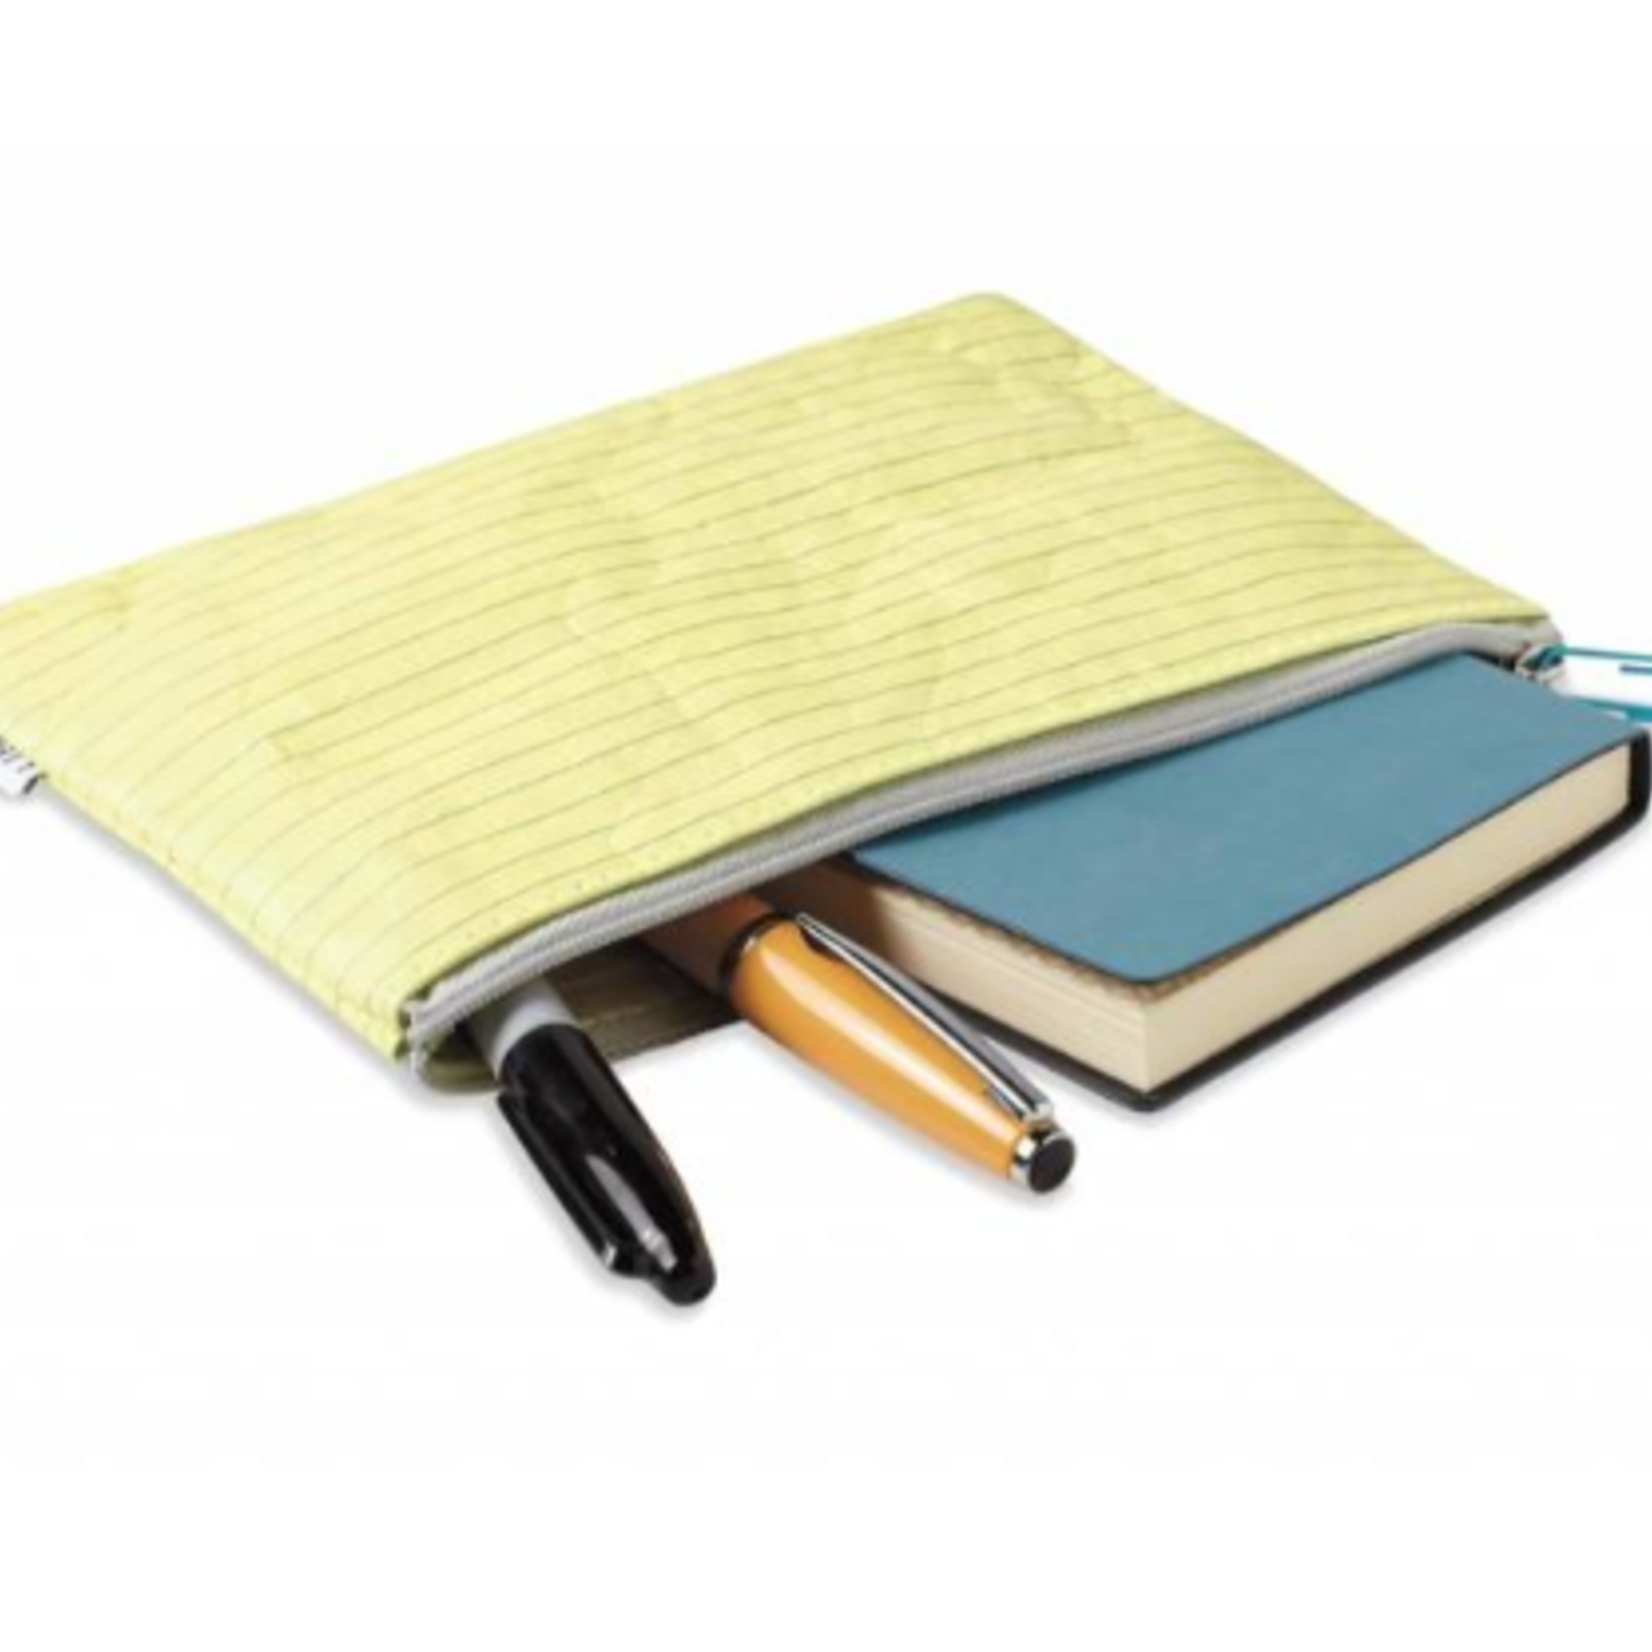 Dynomighty Groot etui Legal paper